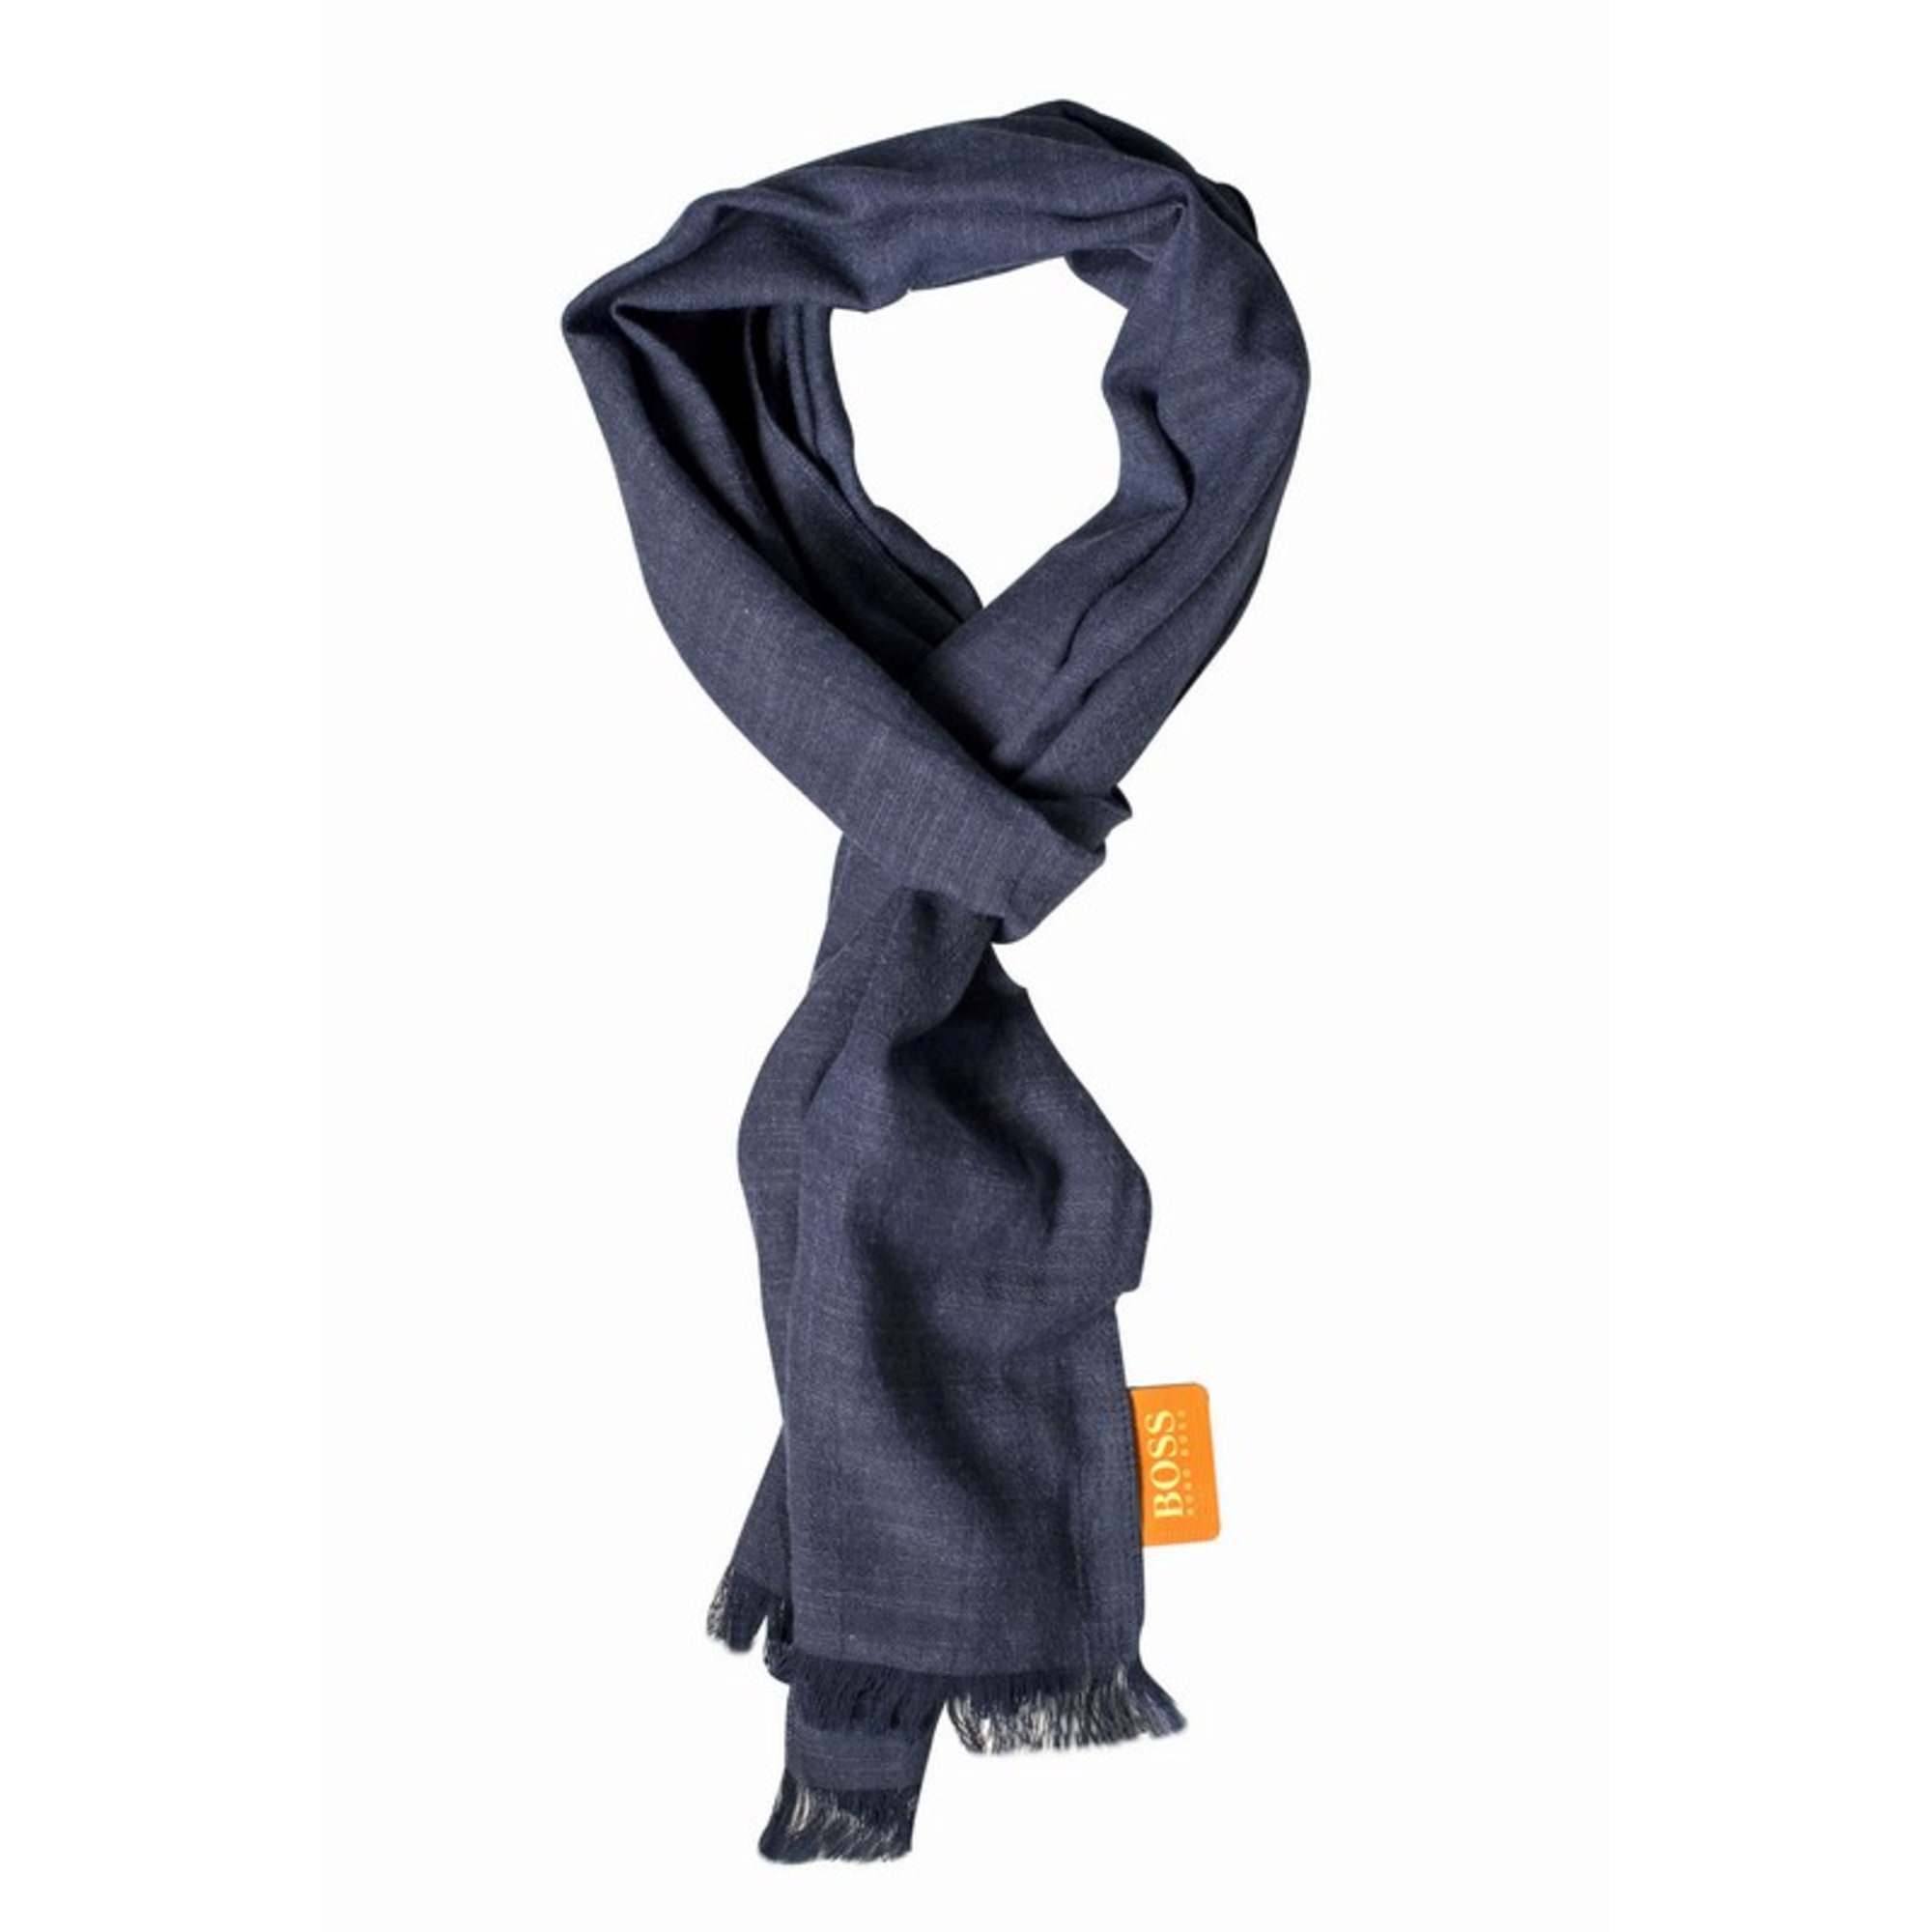 official store cheap for sale half off Foulard